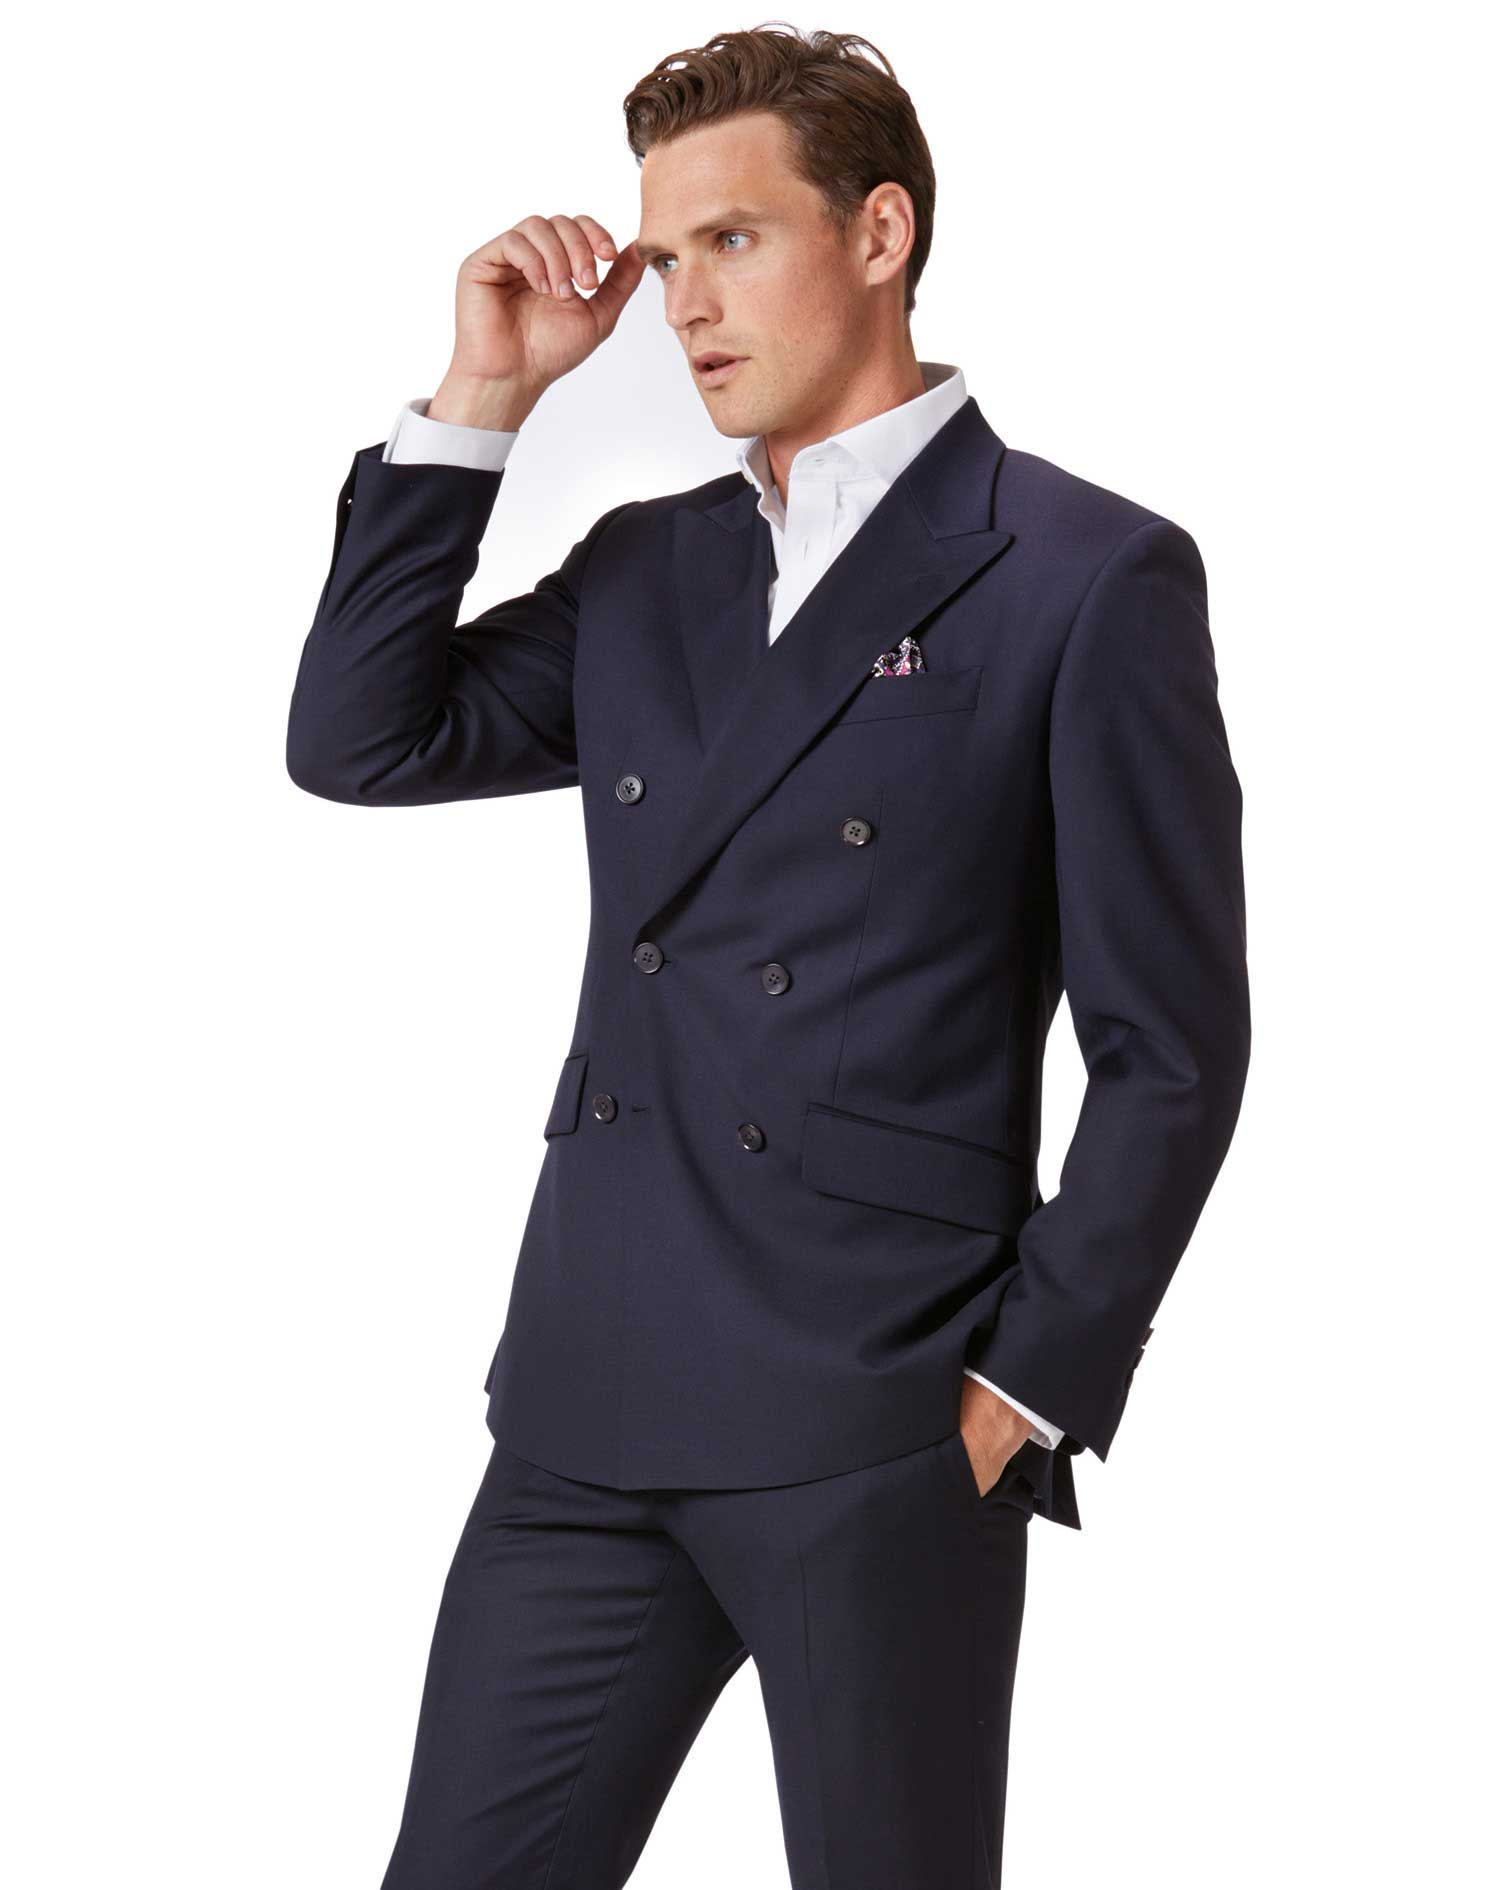 Navy Slim Fit Double Breasted Twill Business Suit Wool Jacket Size 40 Regular by Charles Tyrwhitt